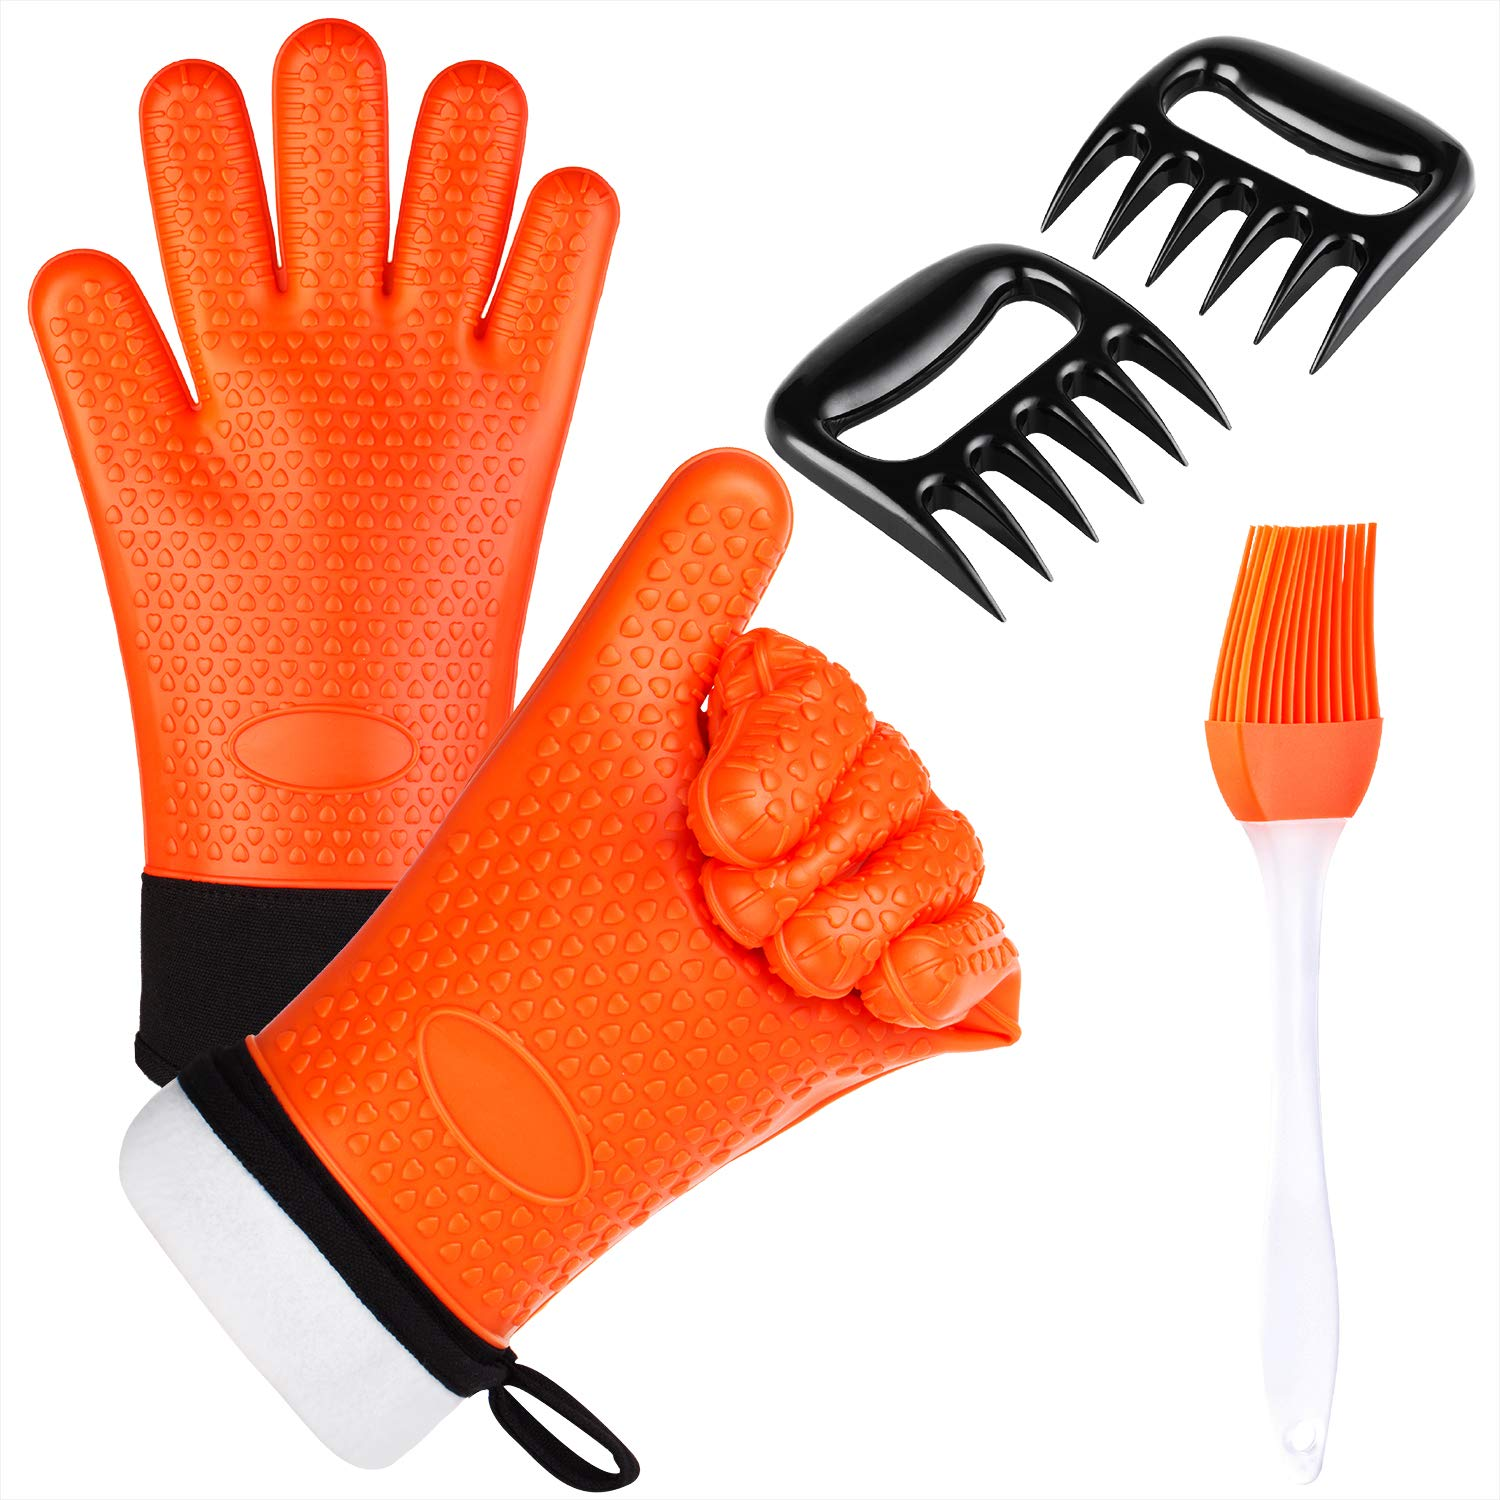 BBQ Oven Gloves - Heat Resistant Extra Forearm Protection, Including Shredder Claws and Silicone Basting Brush, Essential Tools Set for Grilling, Cooking and Baking (Orange)